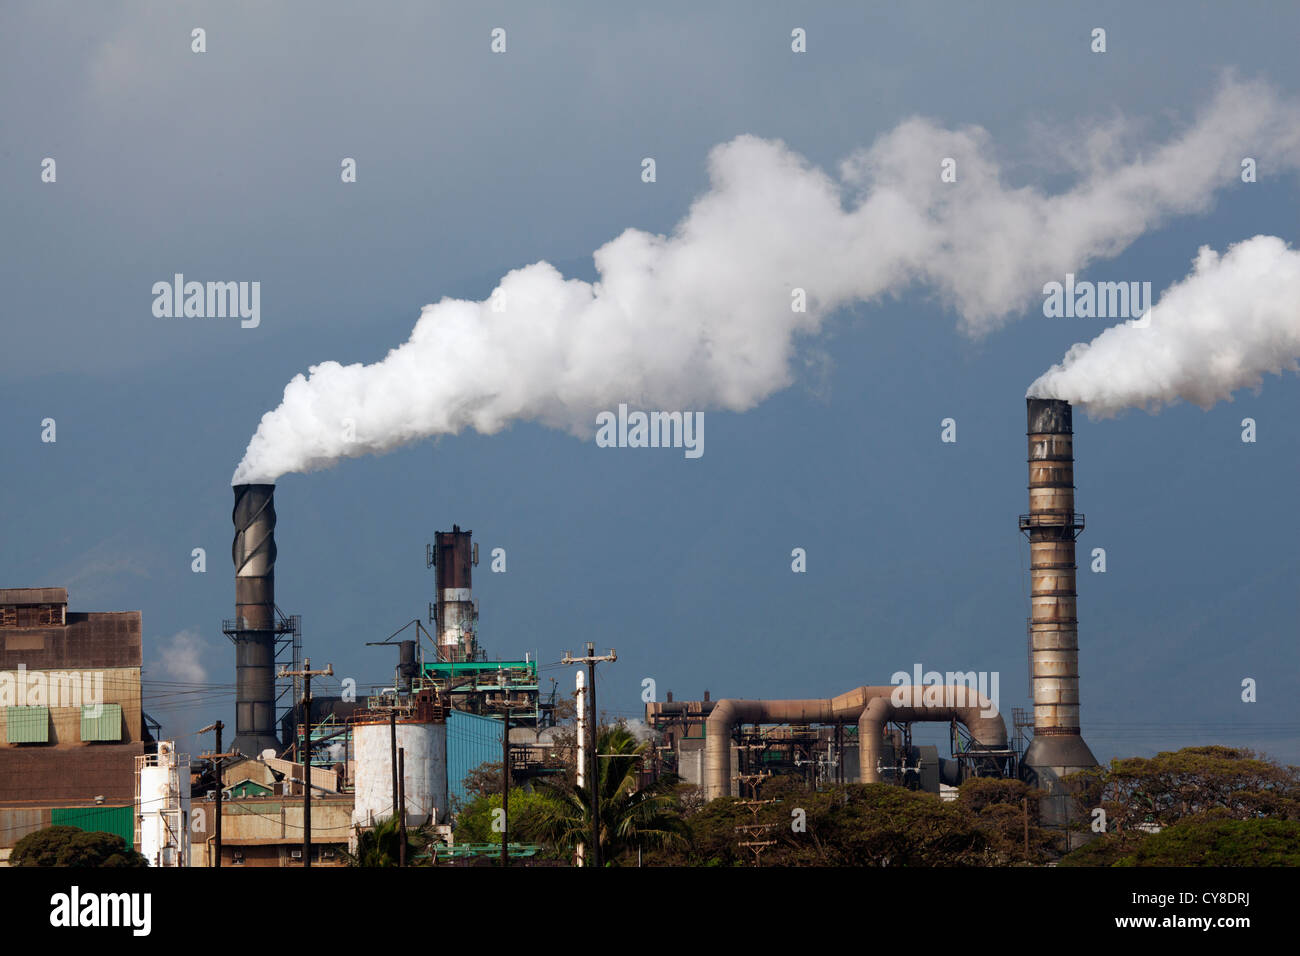 Electricity production at a sugar cane mill, Maui, Hawaii. - Stock Image